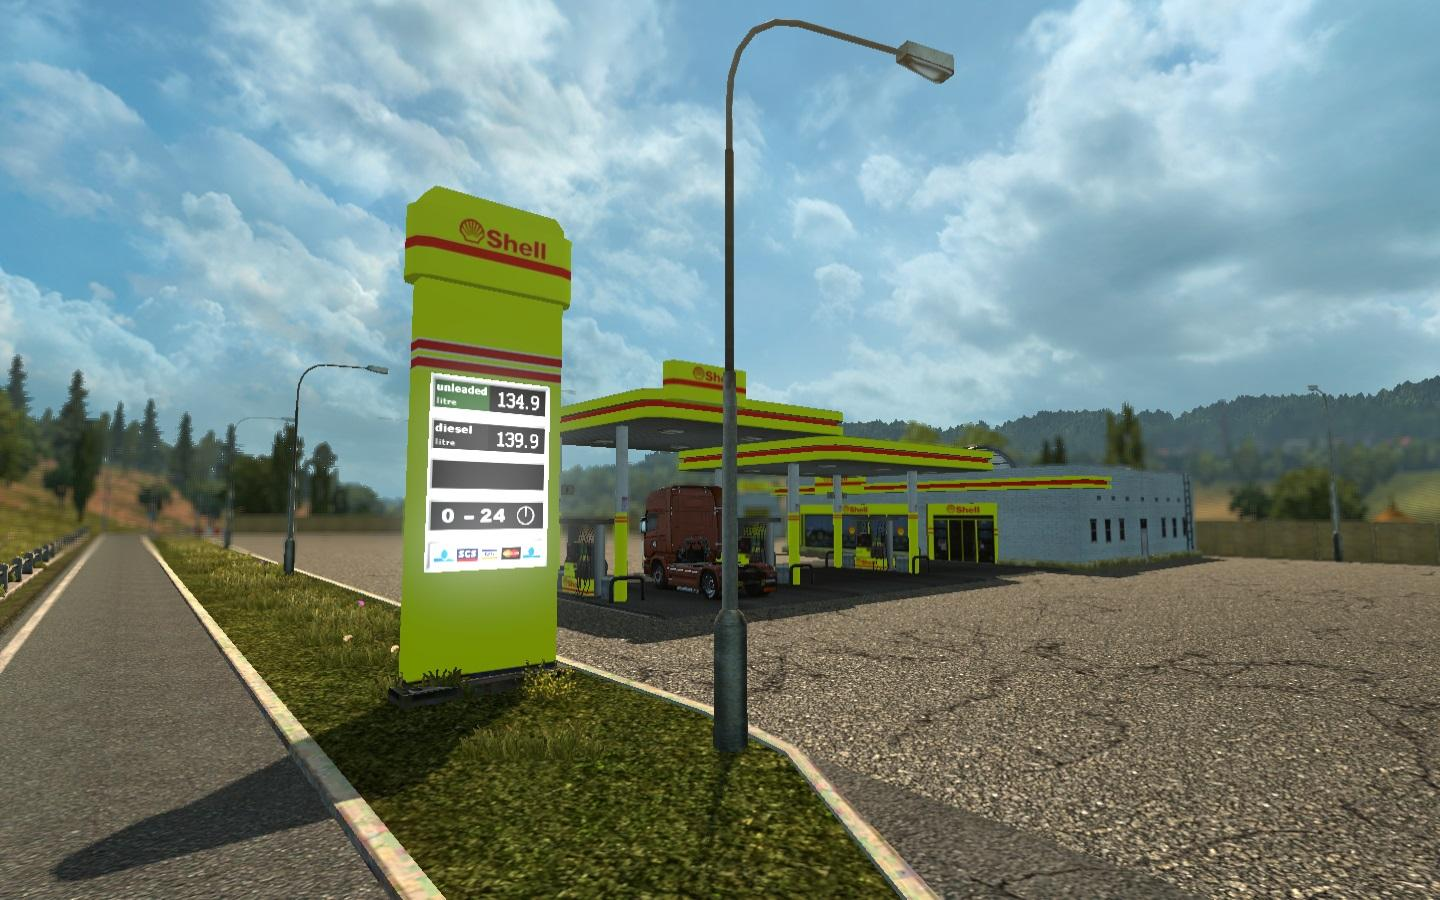 http://www.ets2world.com/wp-content/uploads/2018/07/REAL-EUROPEAN-GAS-STATIONS-V1.0-MOD-2.jpg